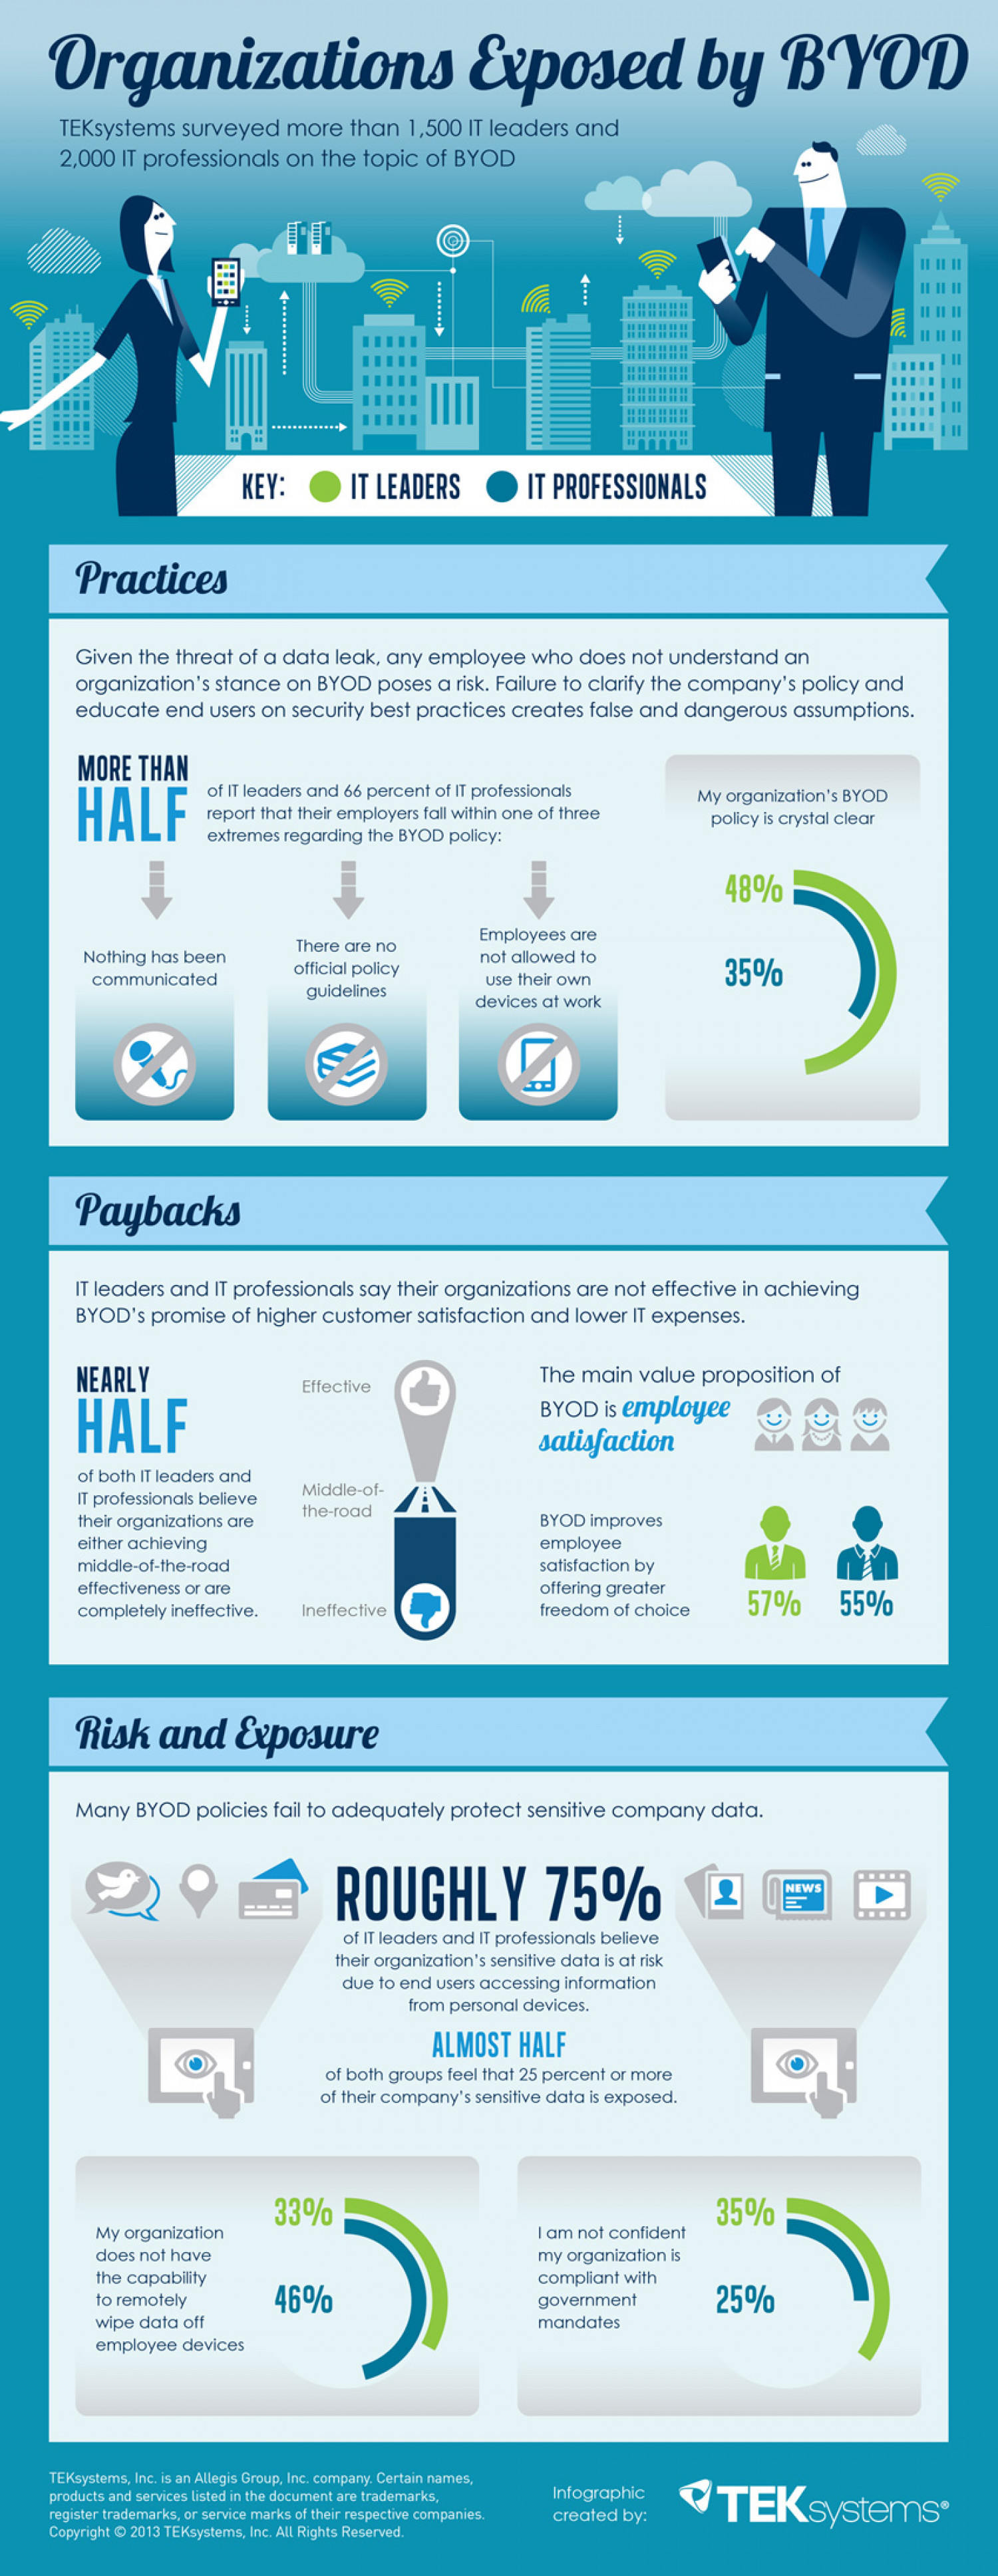 Organizations Exposed by BYOD Infographic